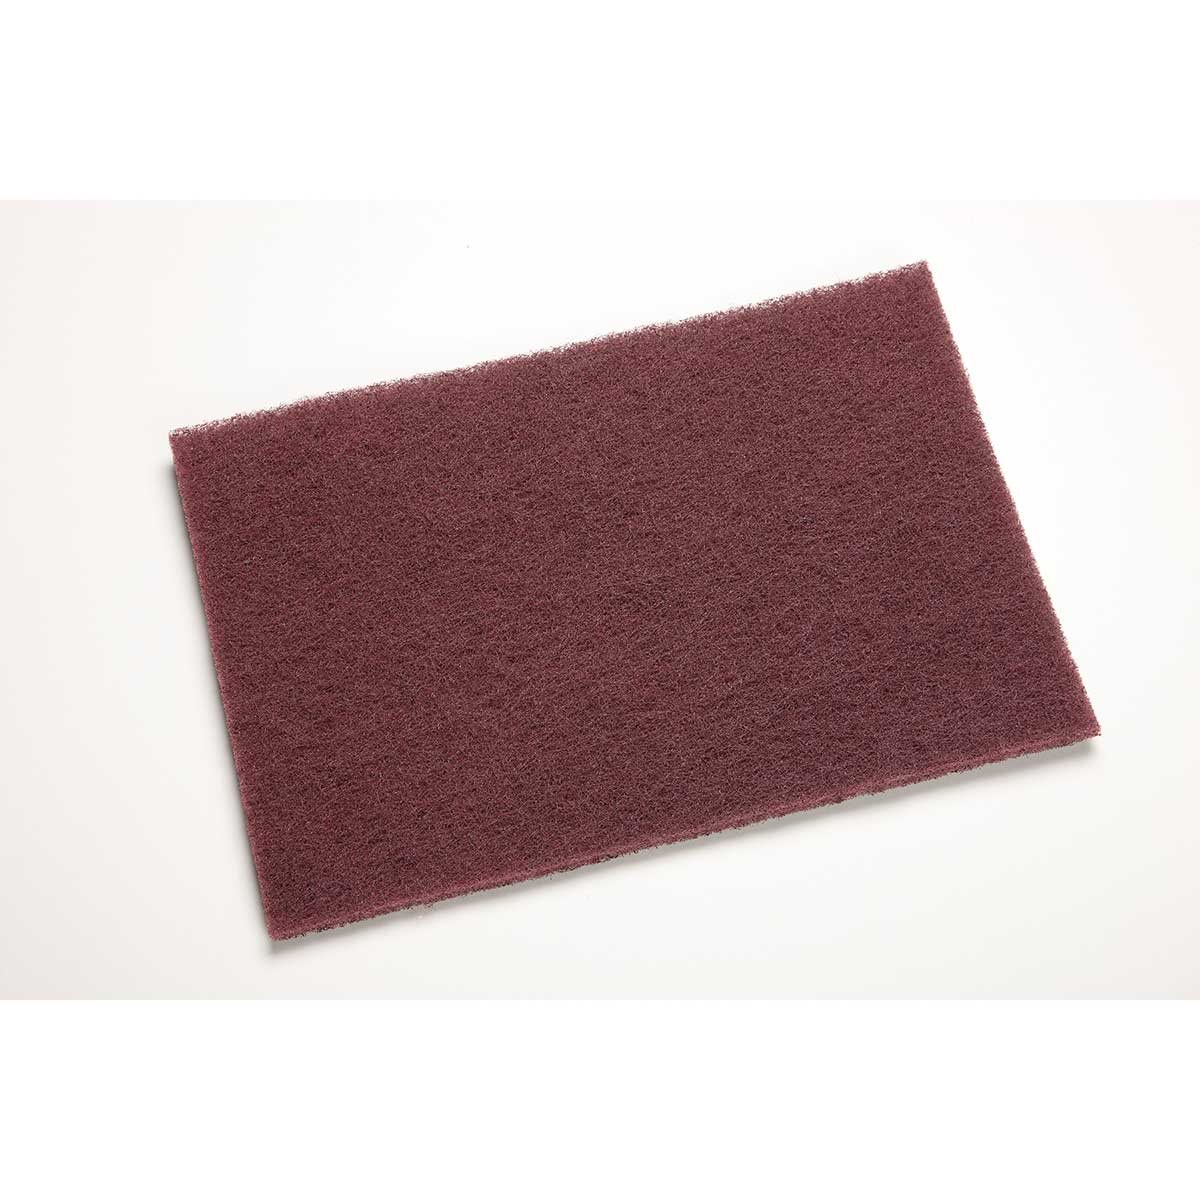 Scotch-Brite™ General Purpose Hand Pad 7447, Case of 10